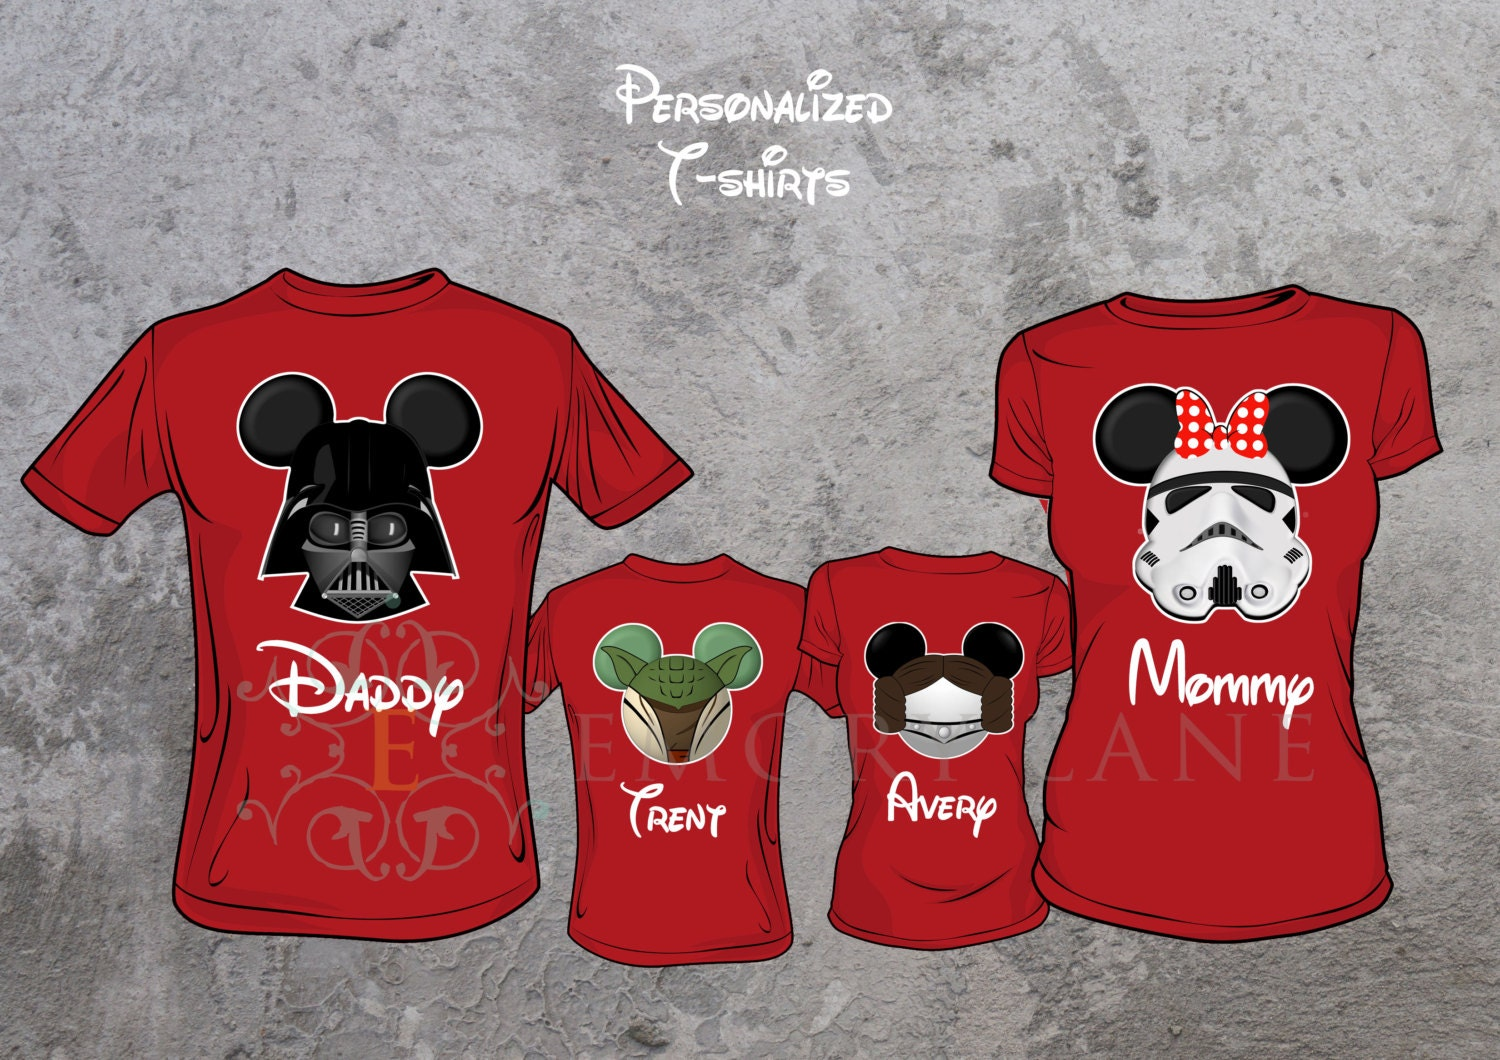 https://res.cloudinary.com/daydapk4h/image/upload/v1516952985/star-wars-custom-shirts_se9ziu.gif